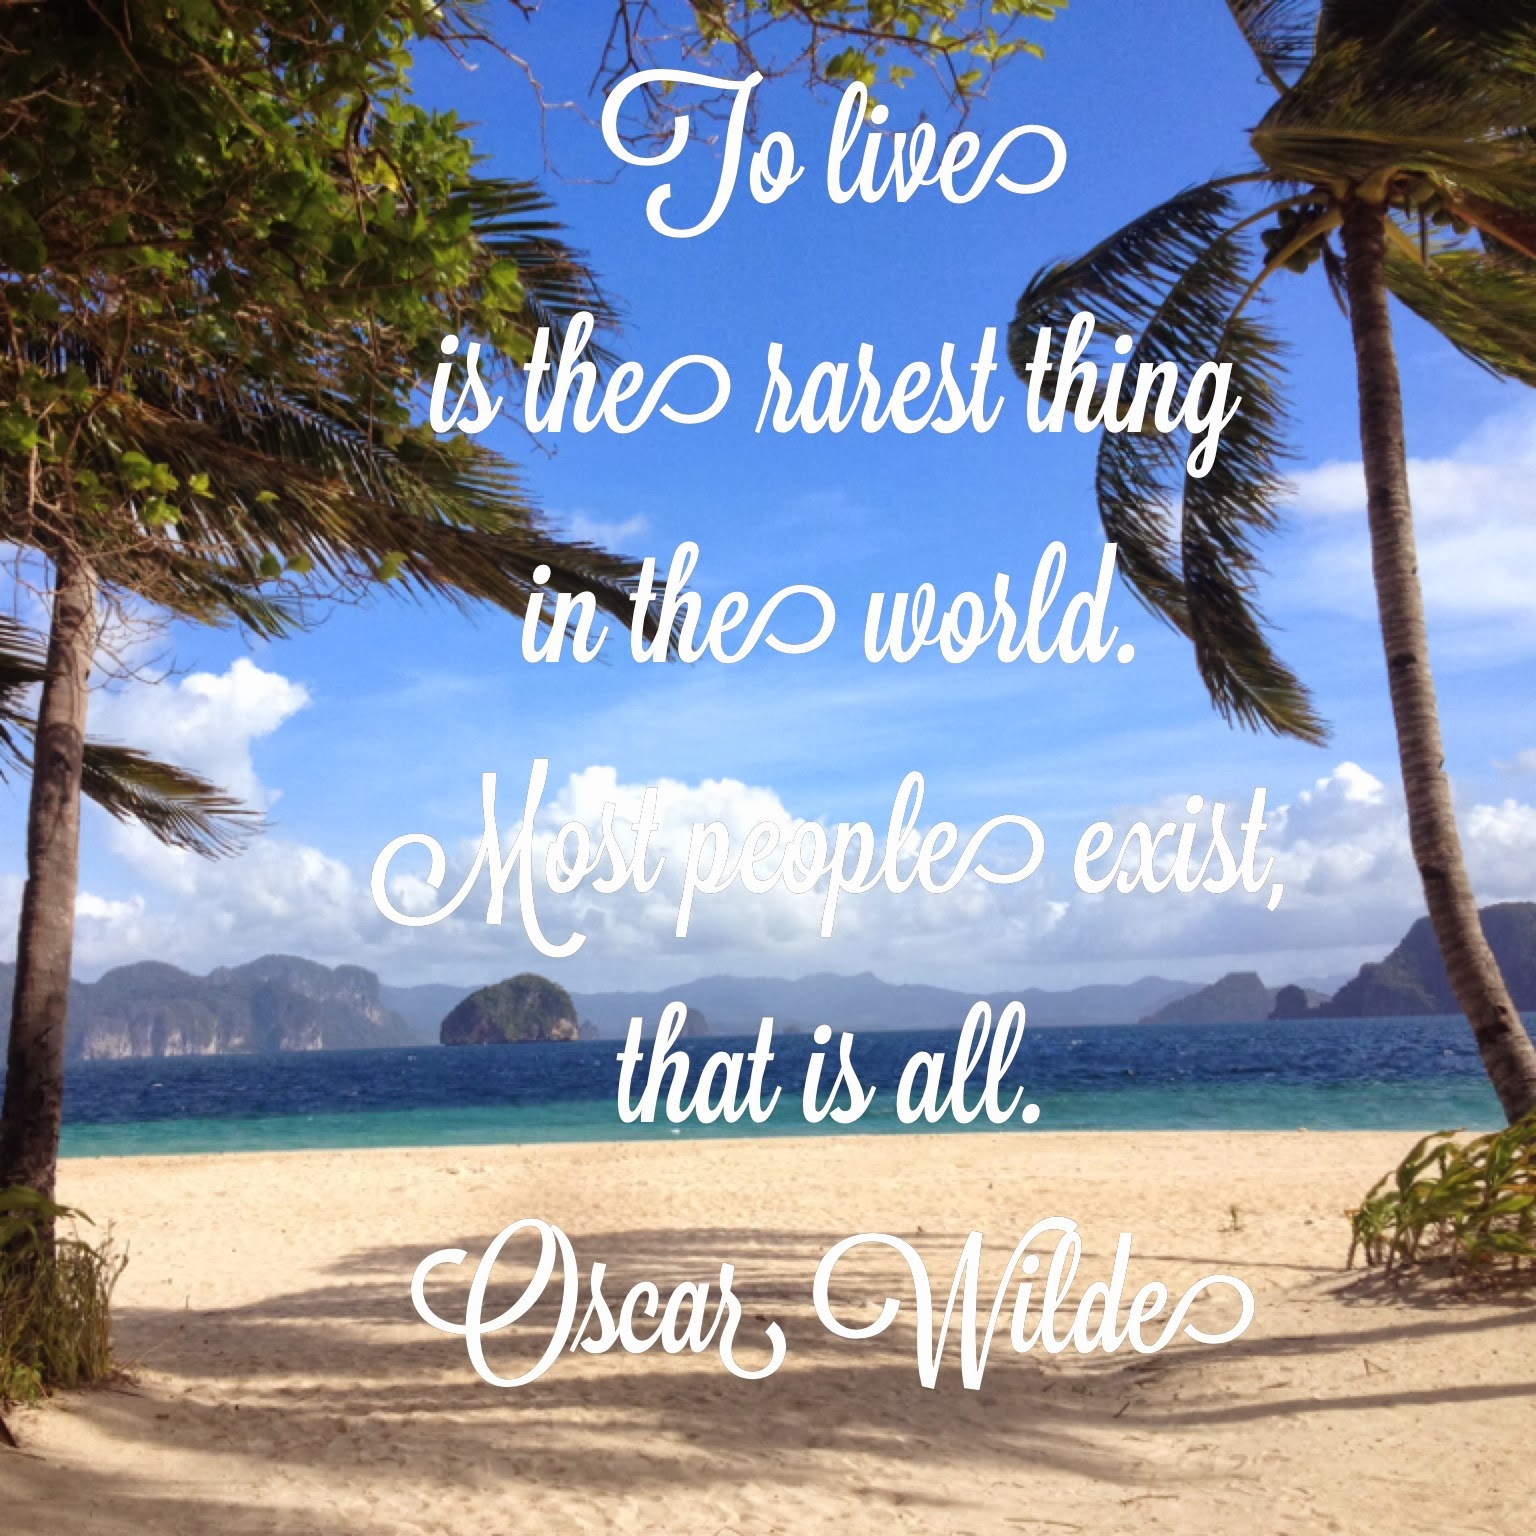 Quotes About Vacation With Family: Famous Quotes About Vacations. QuotesGram